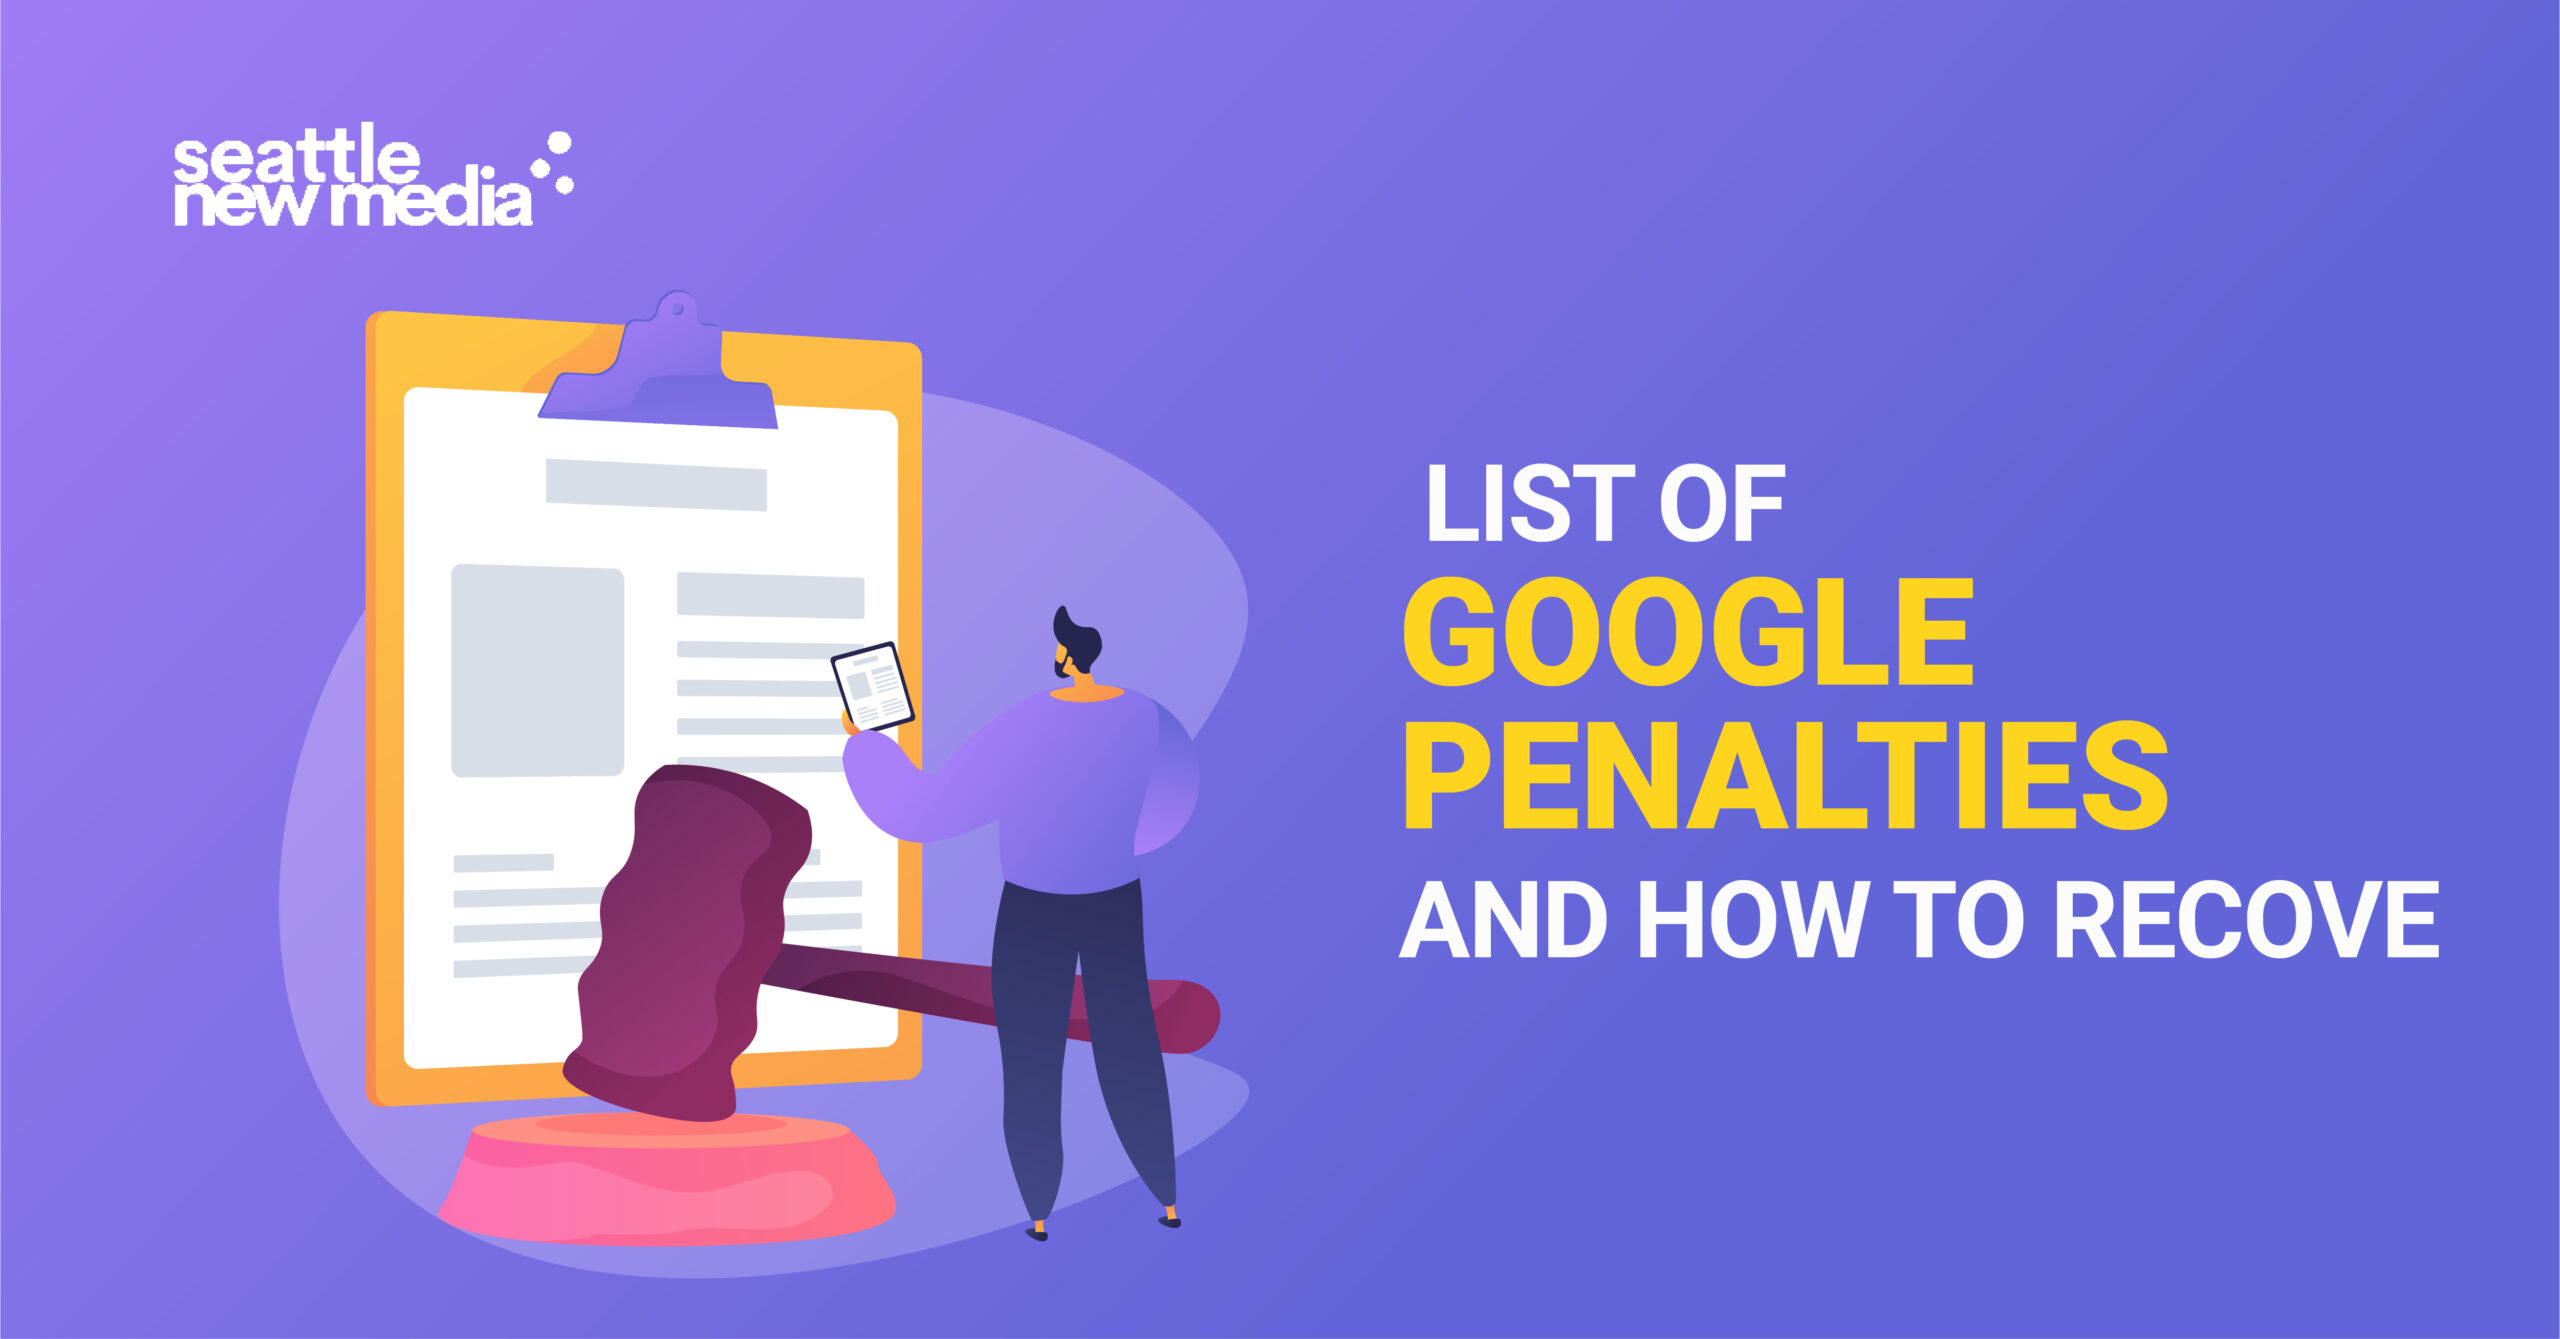 List of Google penalties and how to recover